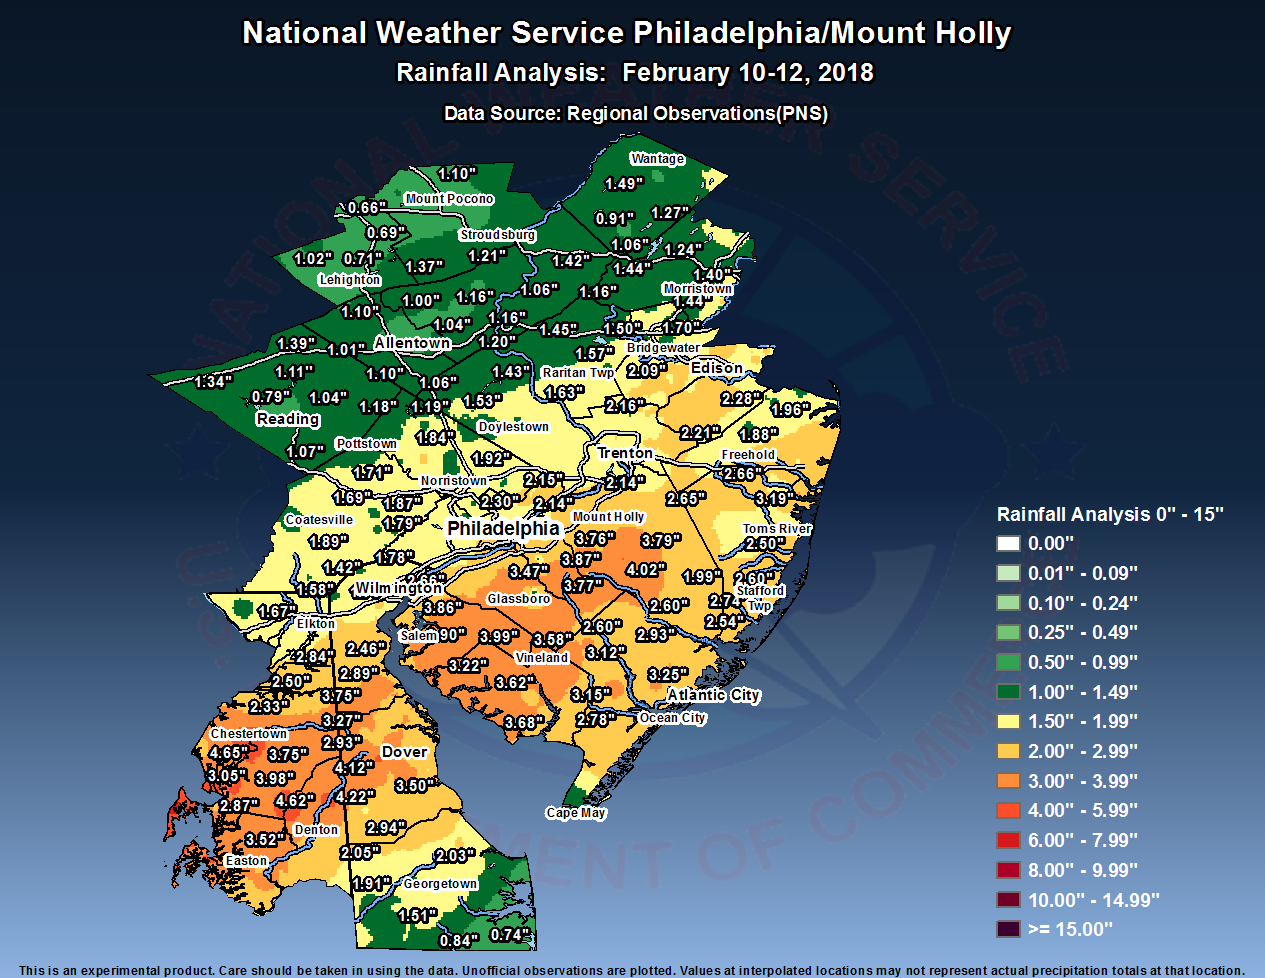 February 10-11, 2018 Heavy Rainfall Event